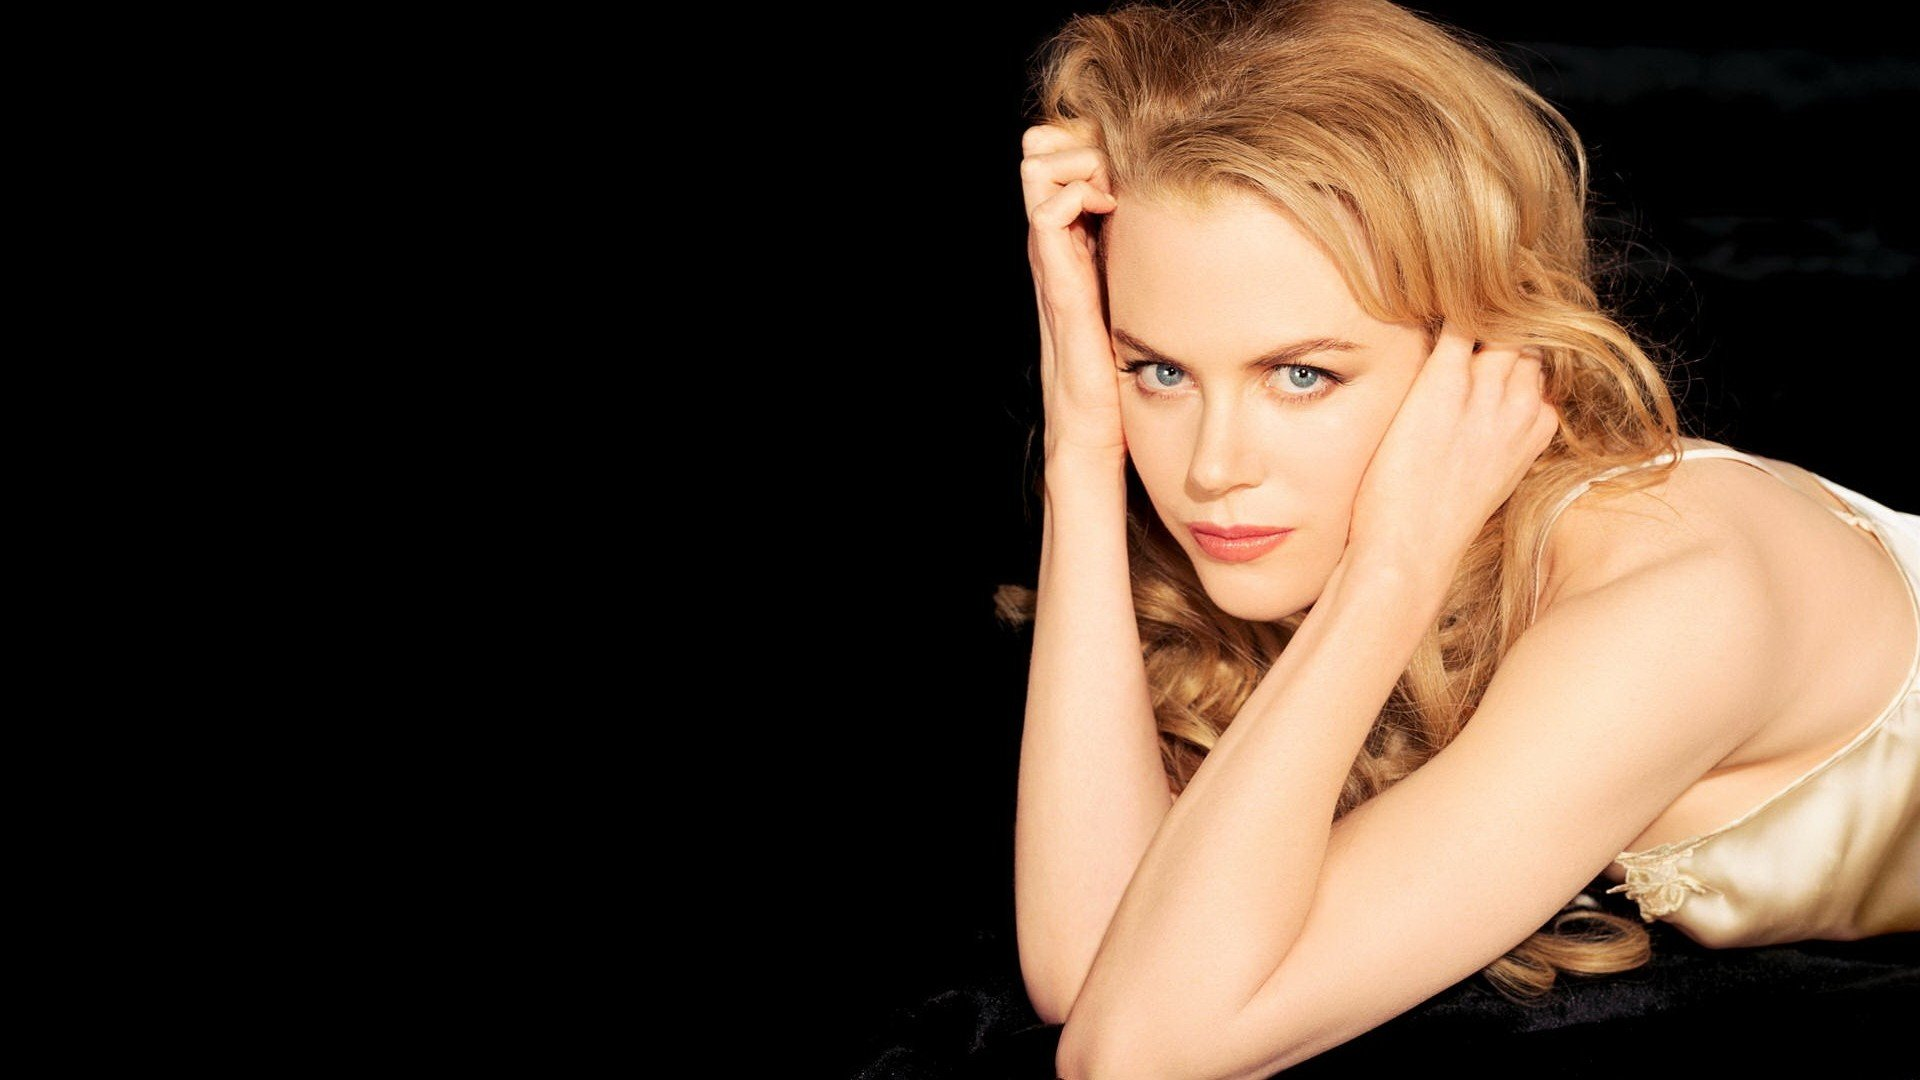 Download full hd 1080p Nicole Kidman PC background ID:438261 for free